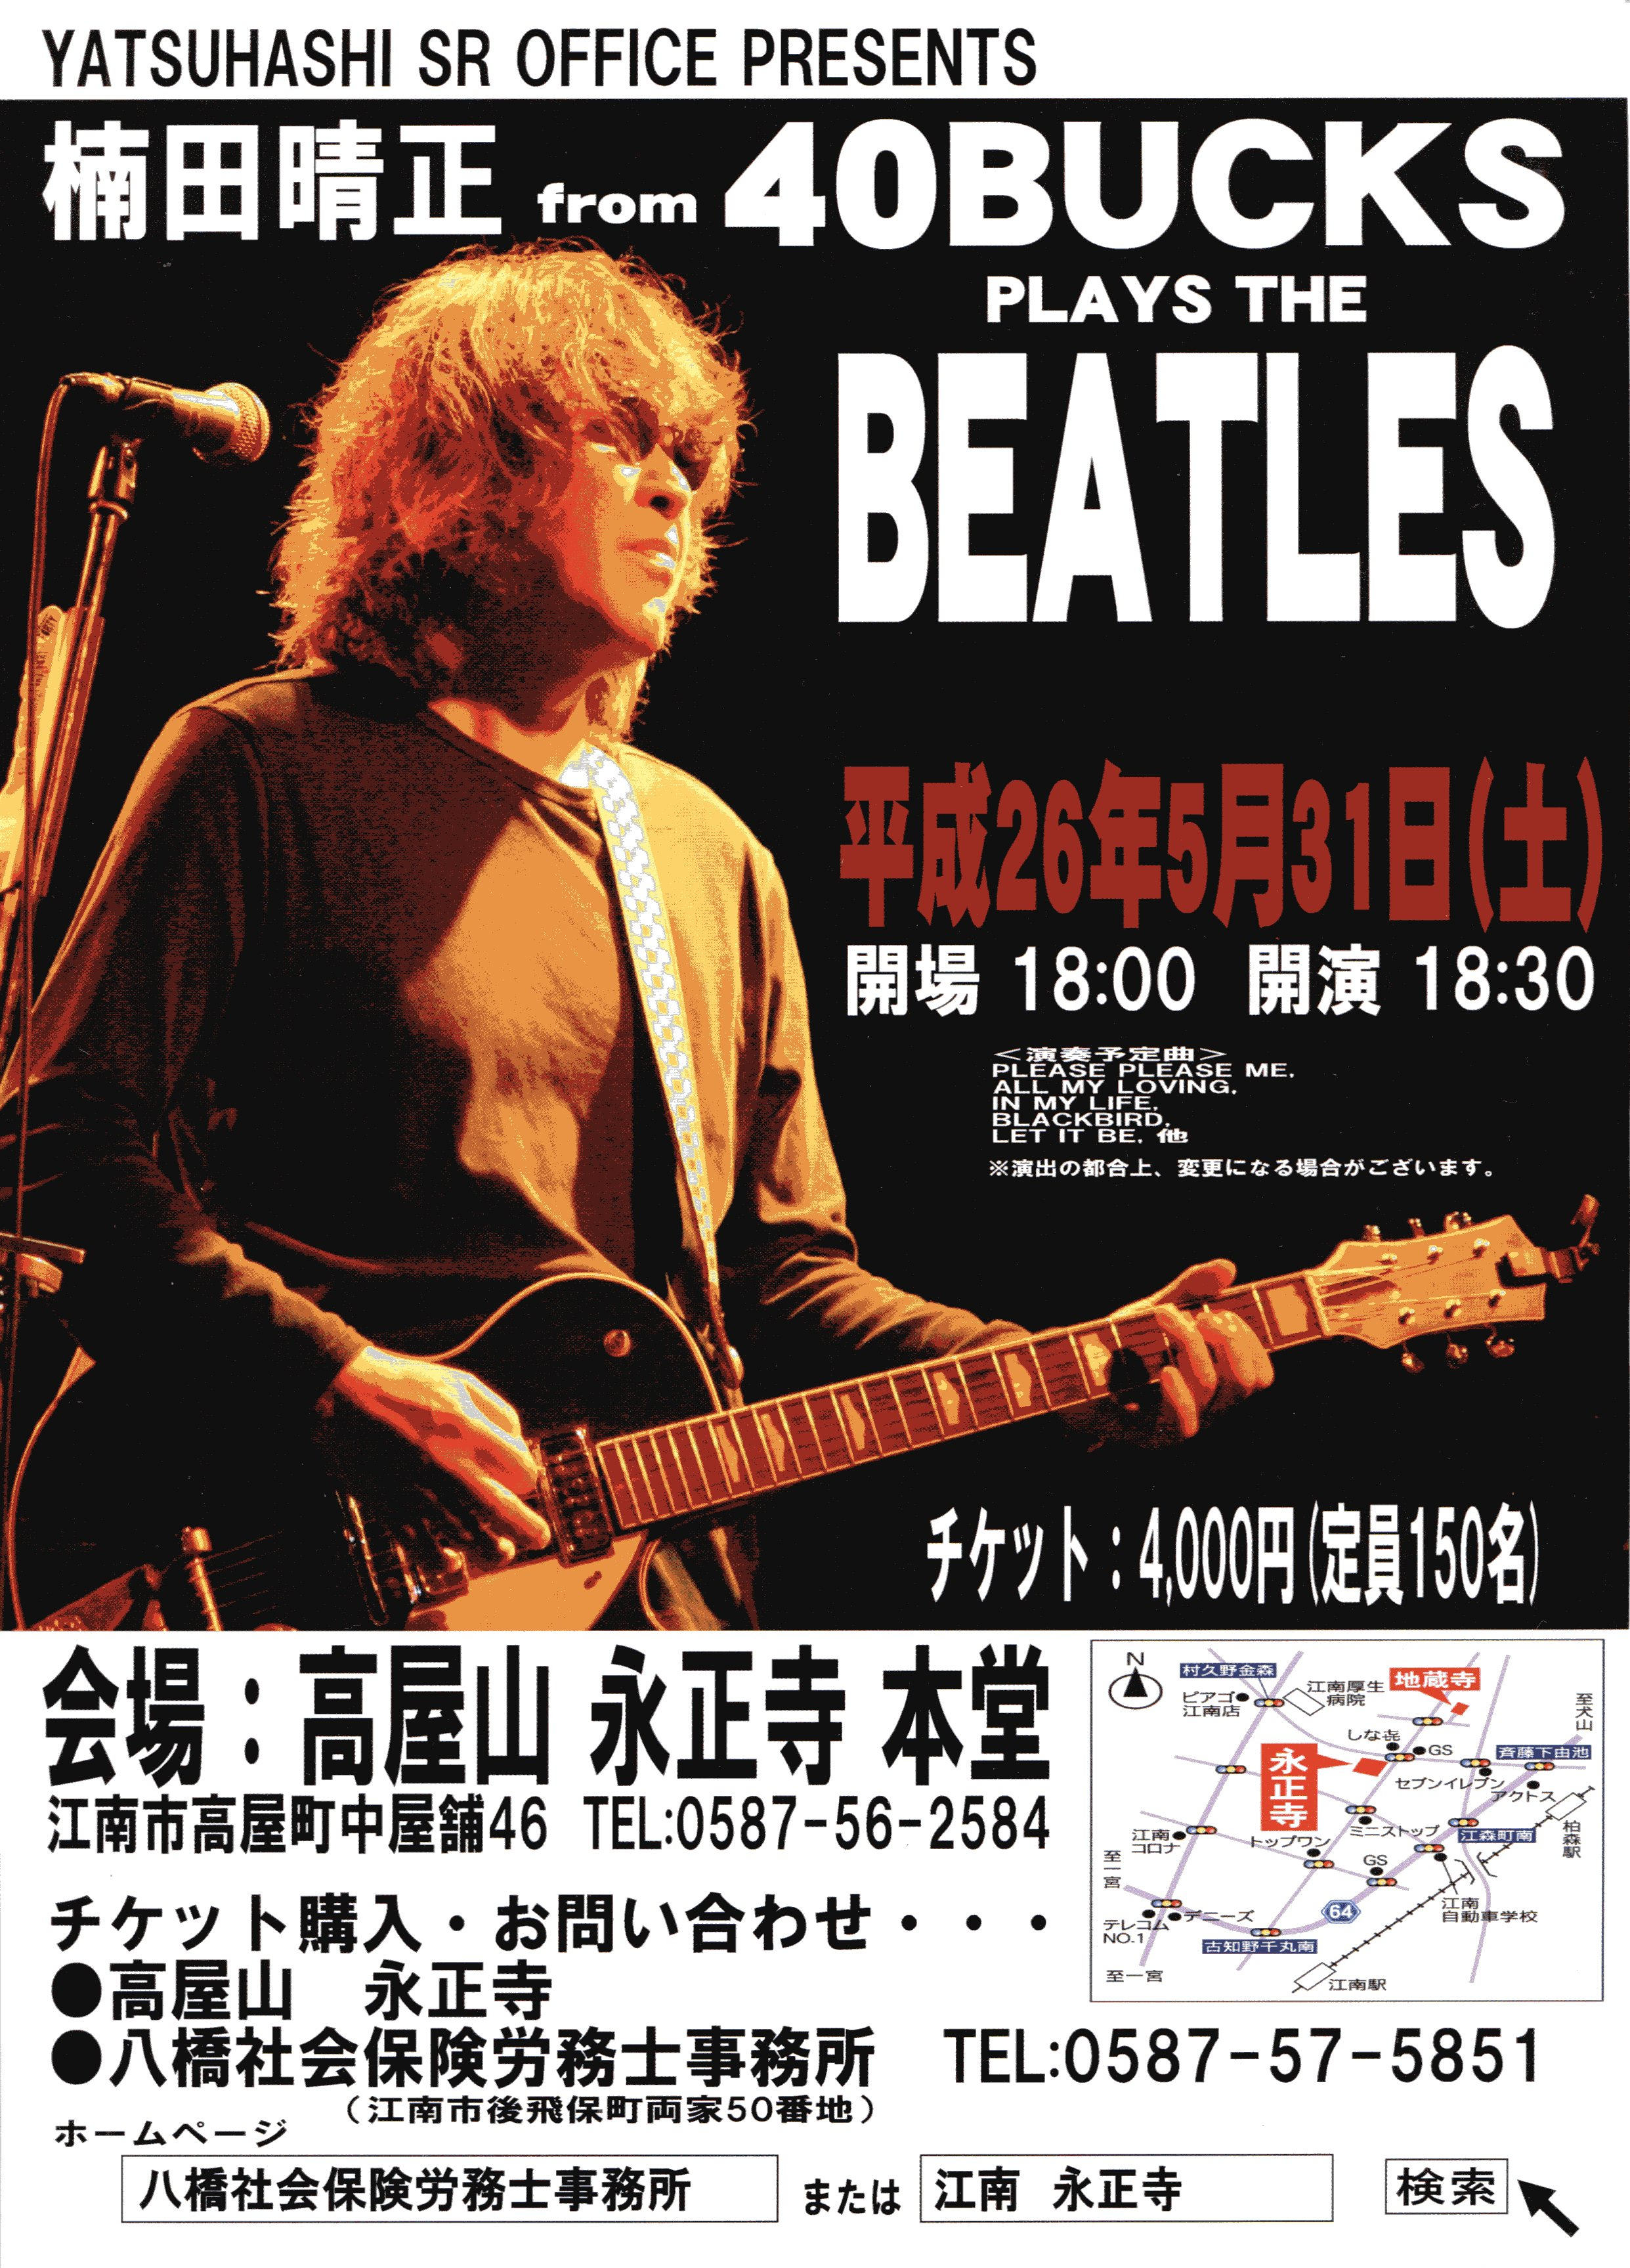 楠田晴正 from 40BUCKS PLAYS THE BEATLES